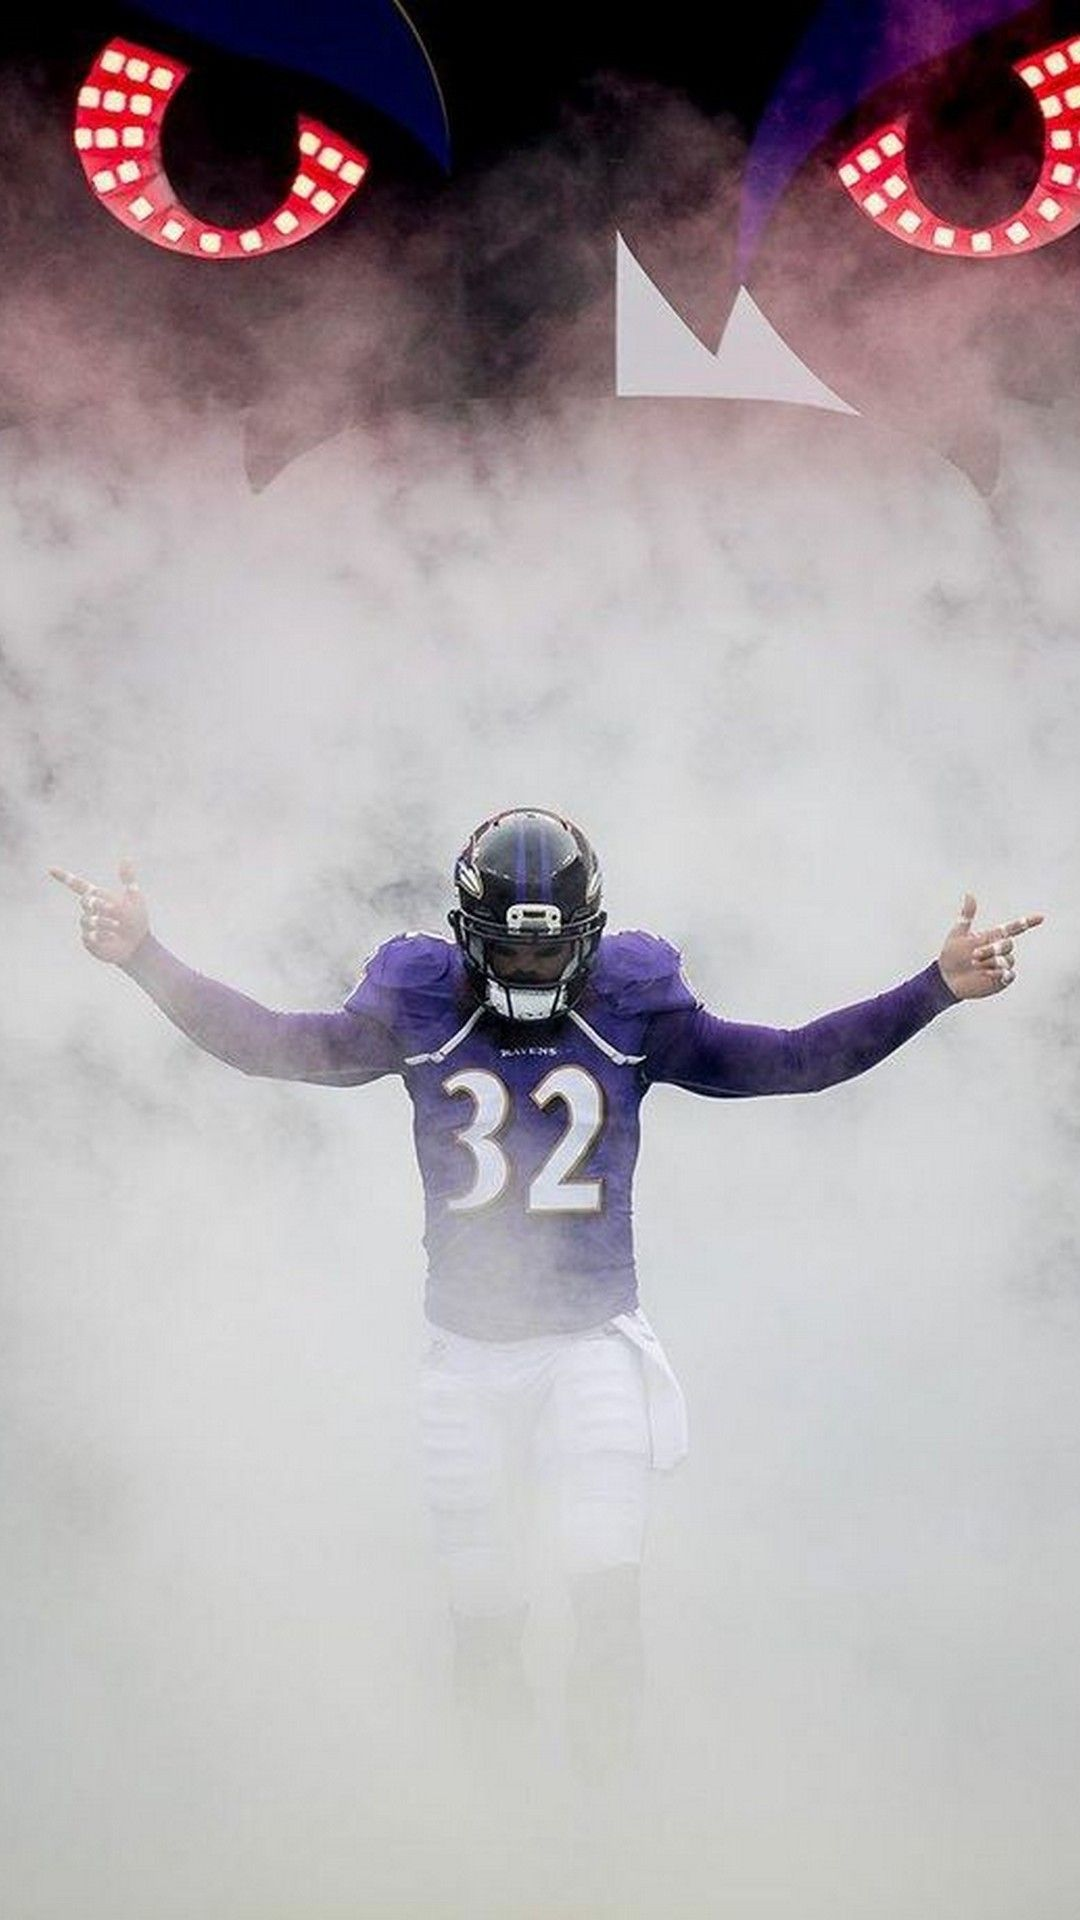 Baltimore Ravens Hd Wallpaper For Iphone 2020 Nfl Football Wallpapers In 2020 Nfl Football Wallpaper Football Wallpaper Hd Wallpaper Iphone